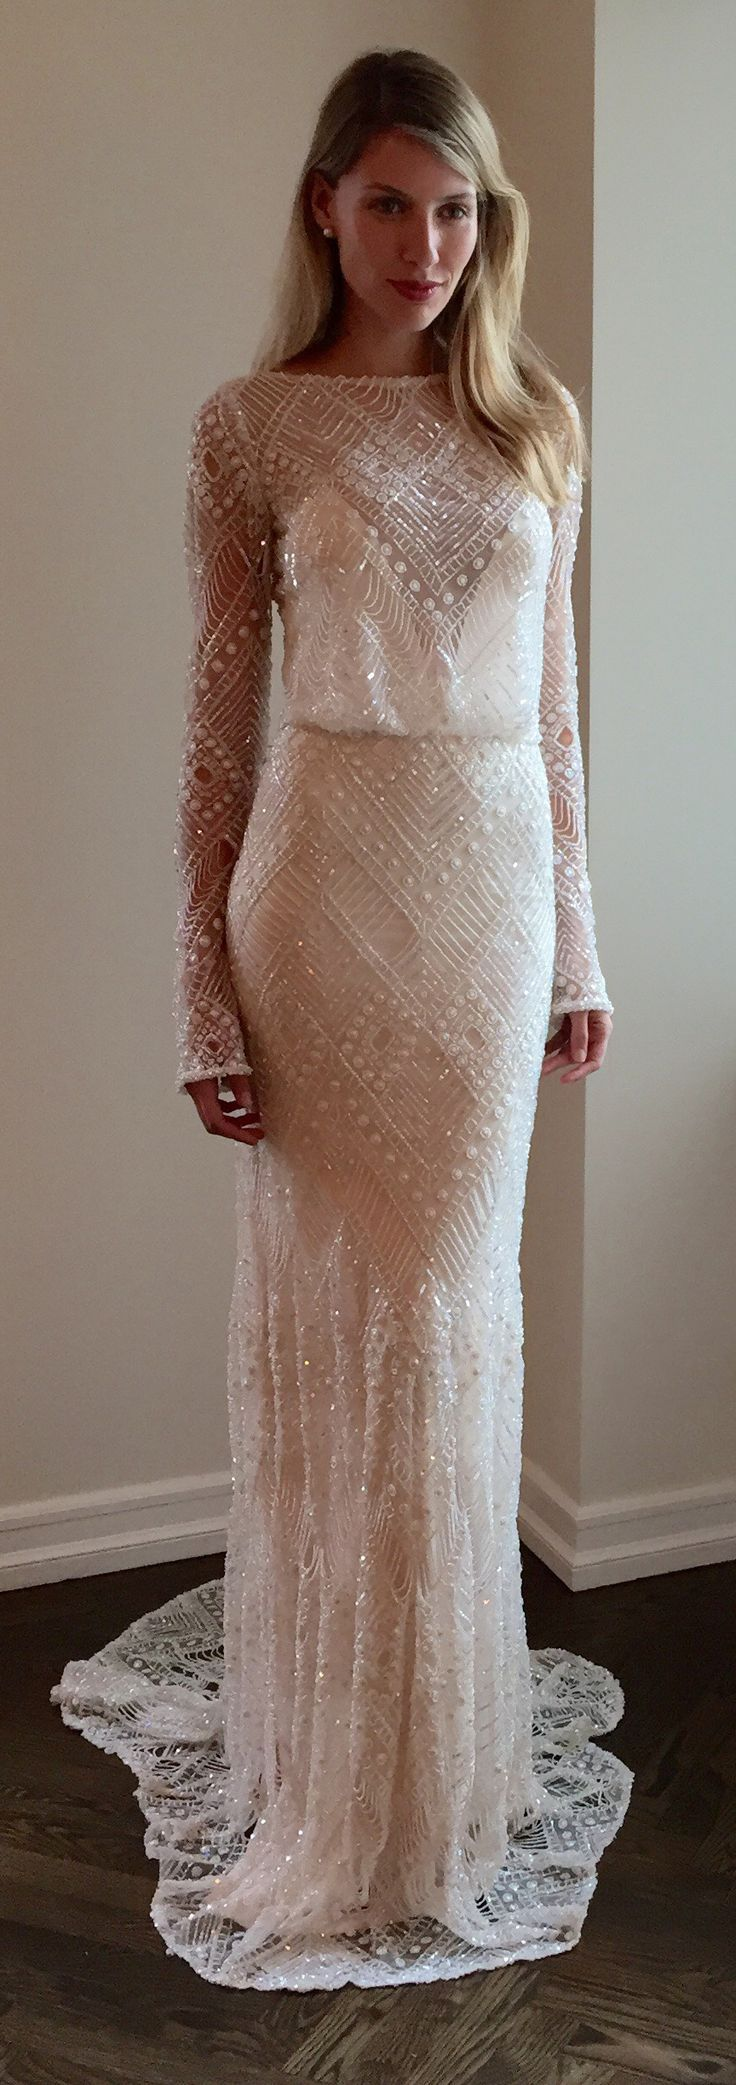 99 wedding dresses  cool BERTA Beauty from the NY Bridal Fashion Week  by